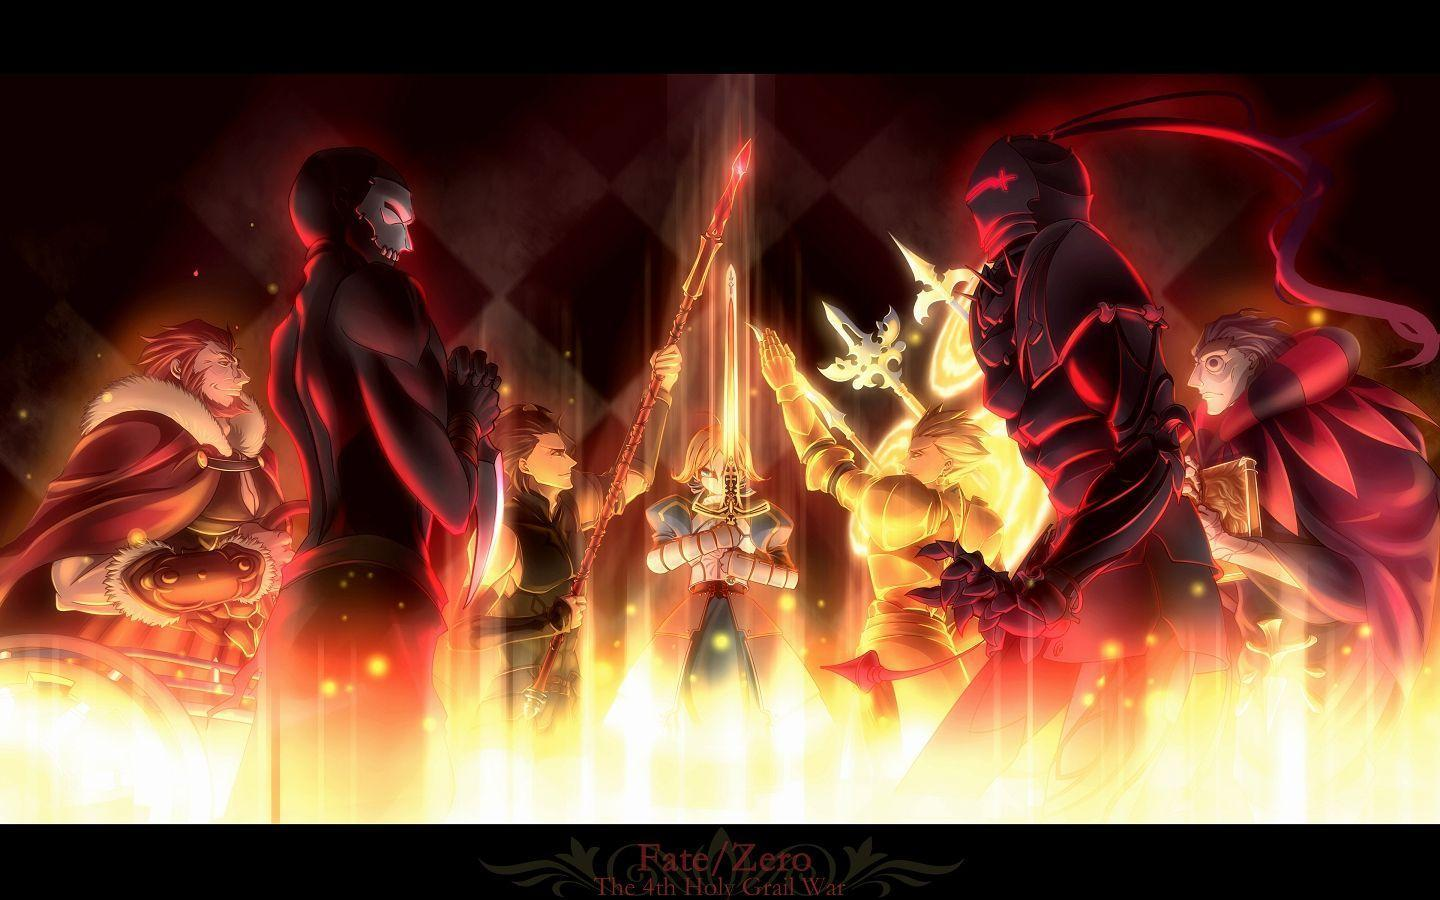 Fate Zero Wallpapers Wallpaper Cave